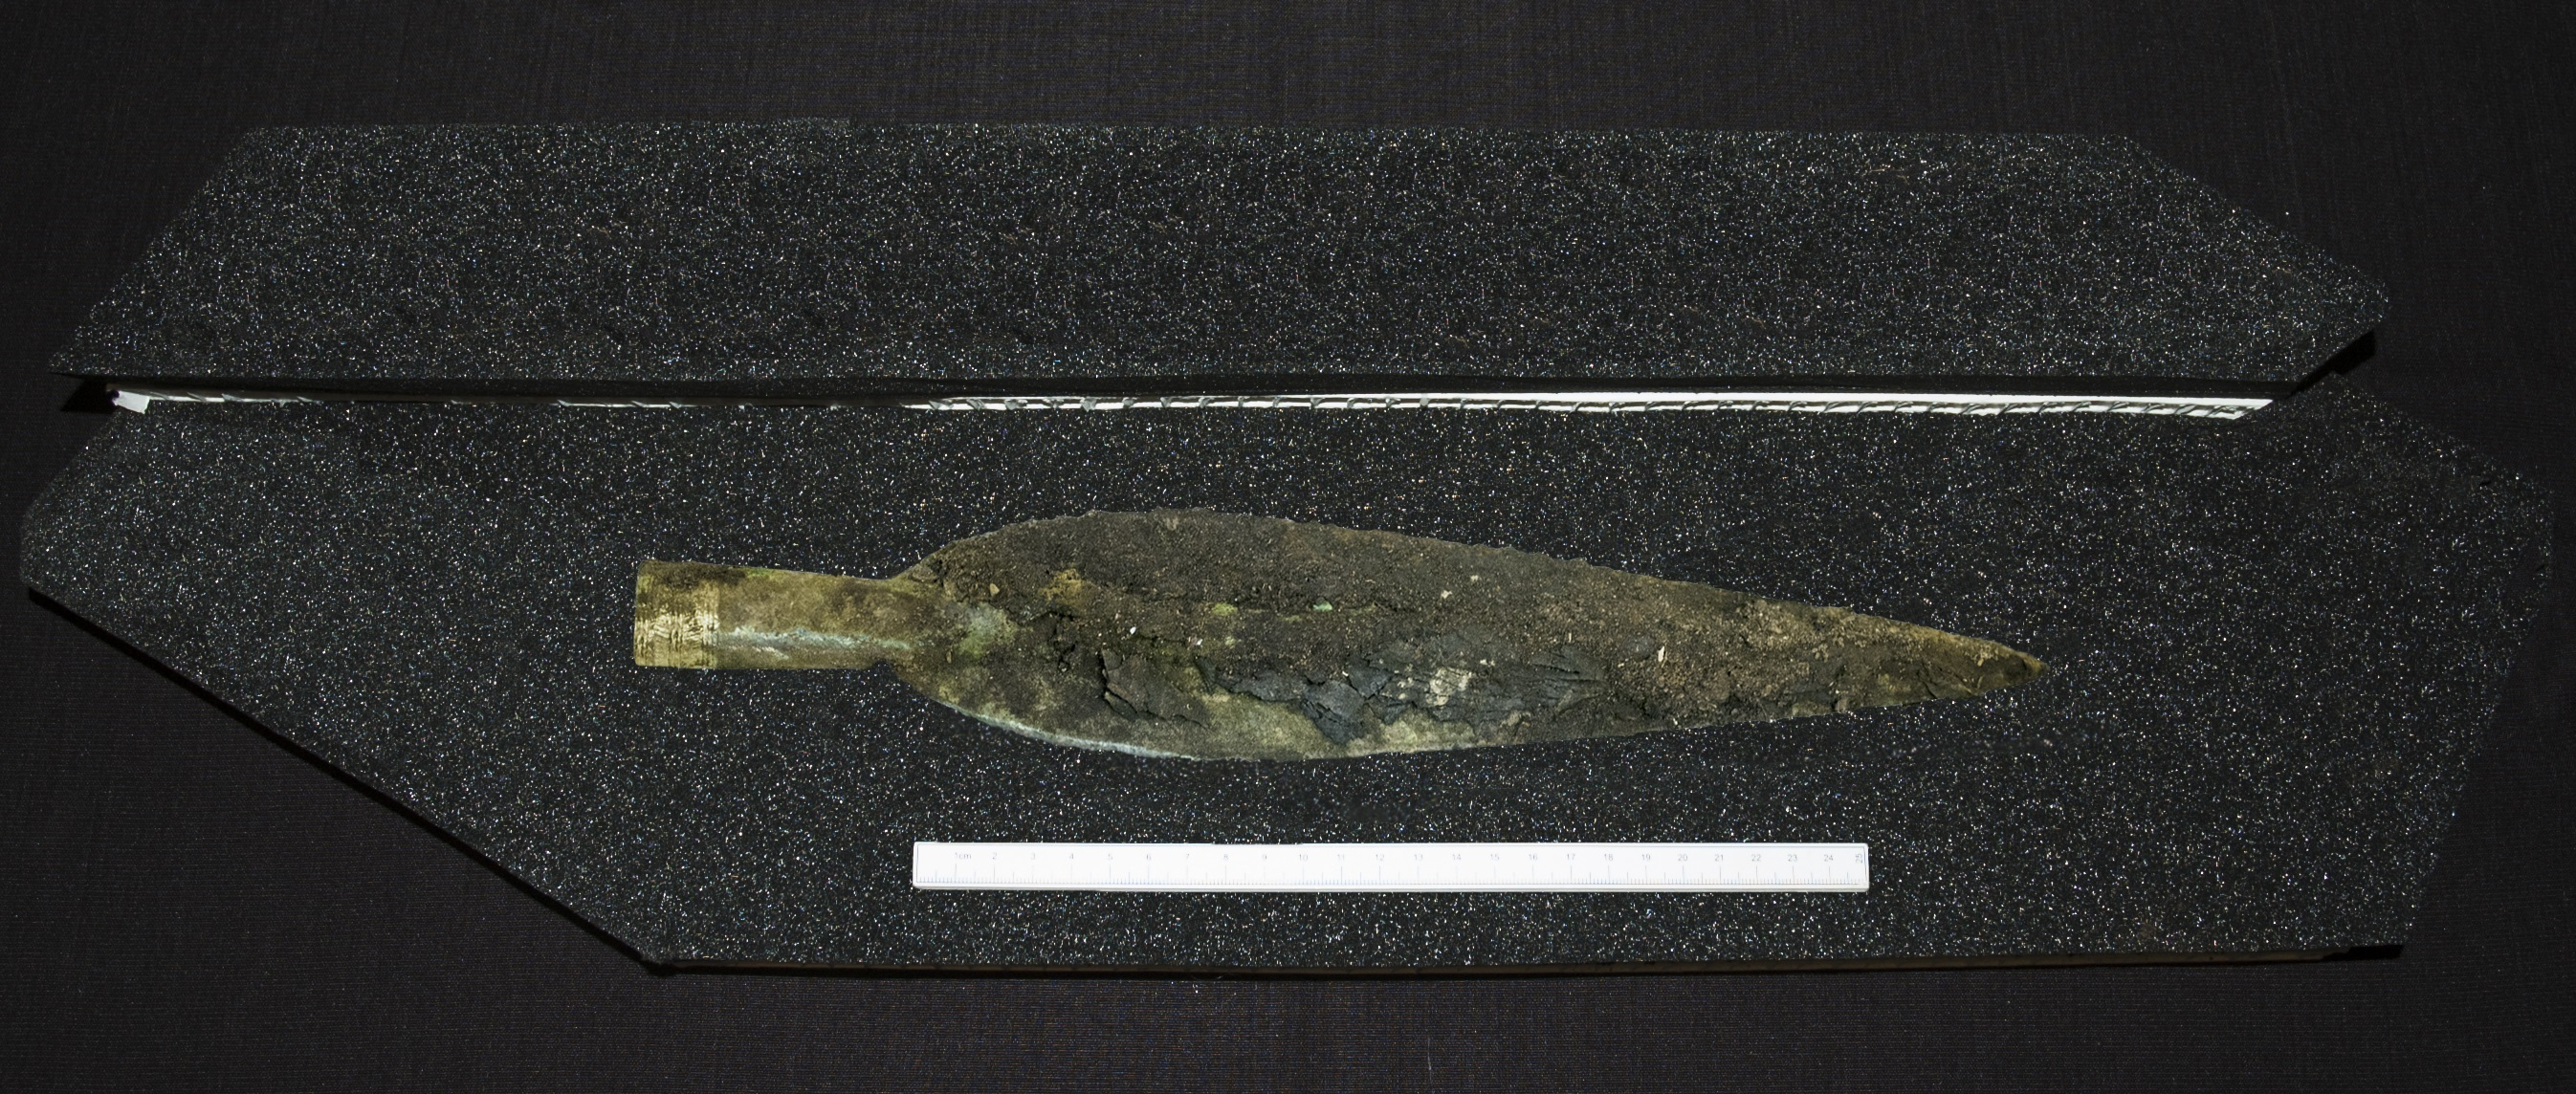 The gold decorated bronze spearhead found at Carnoustie